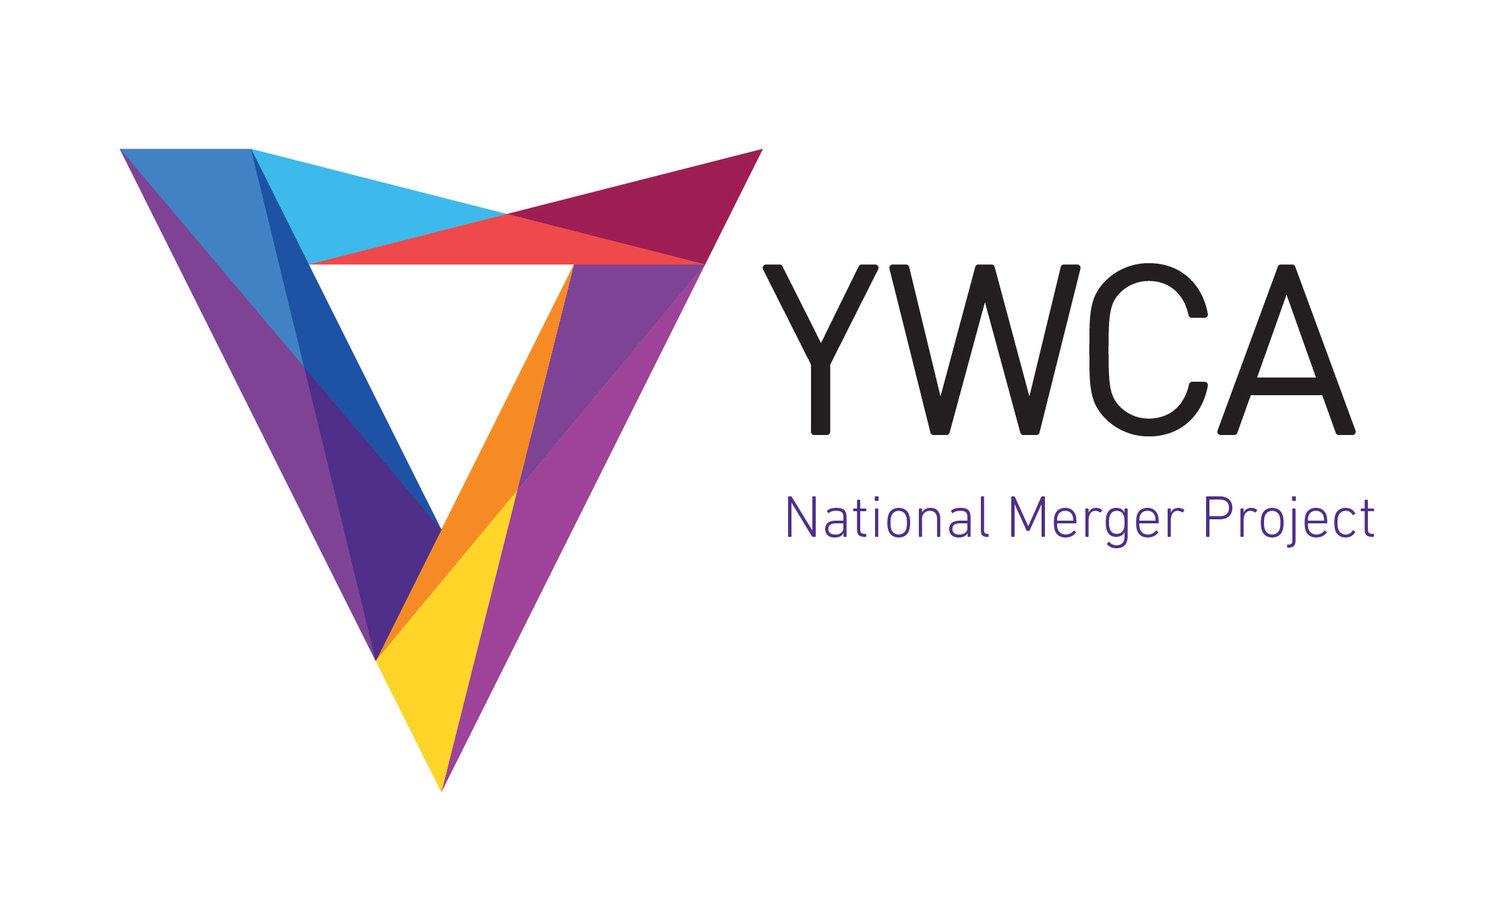 YWCA National Merger Project